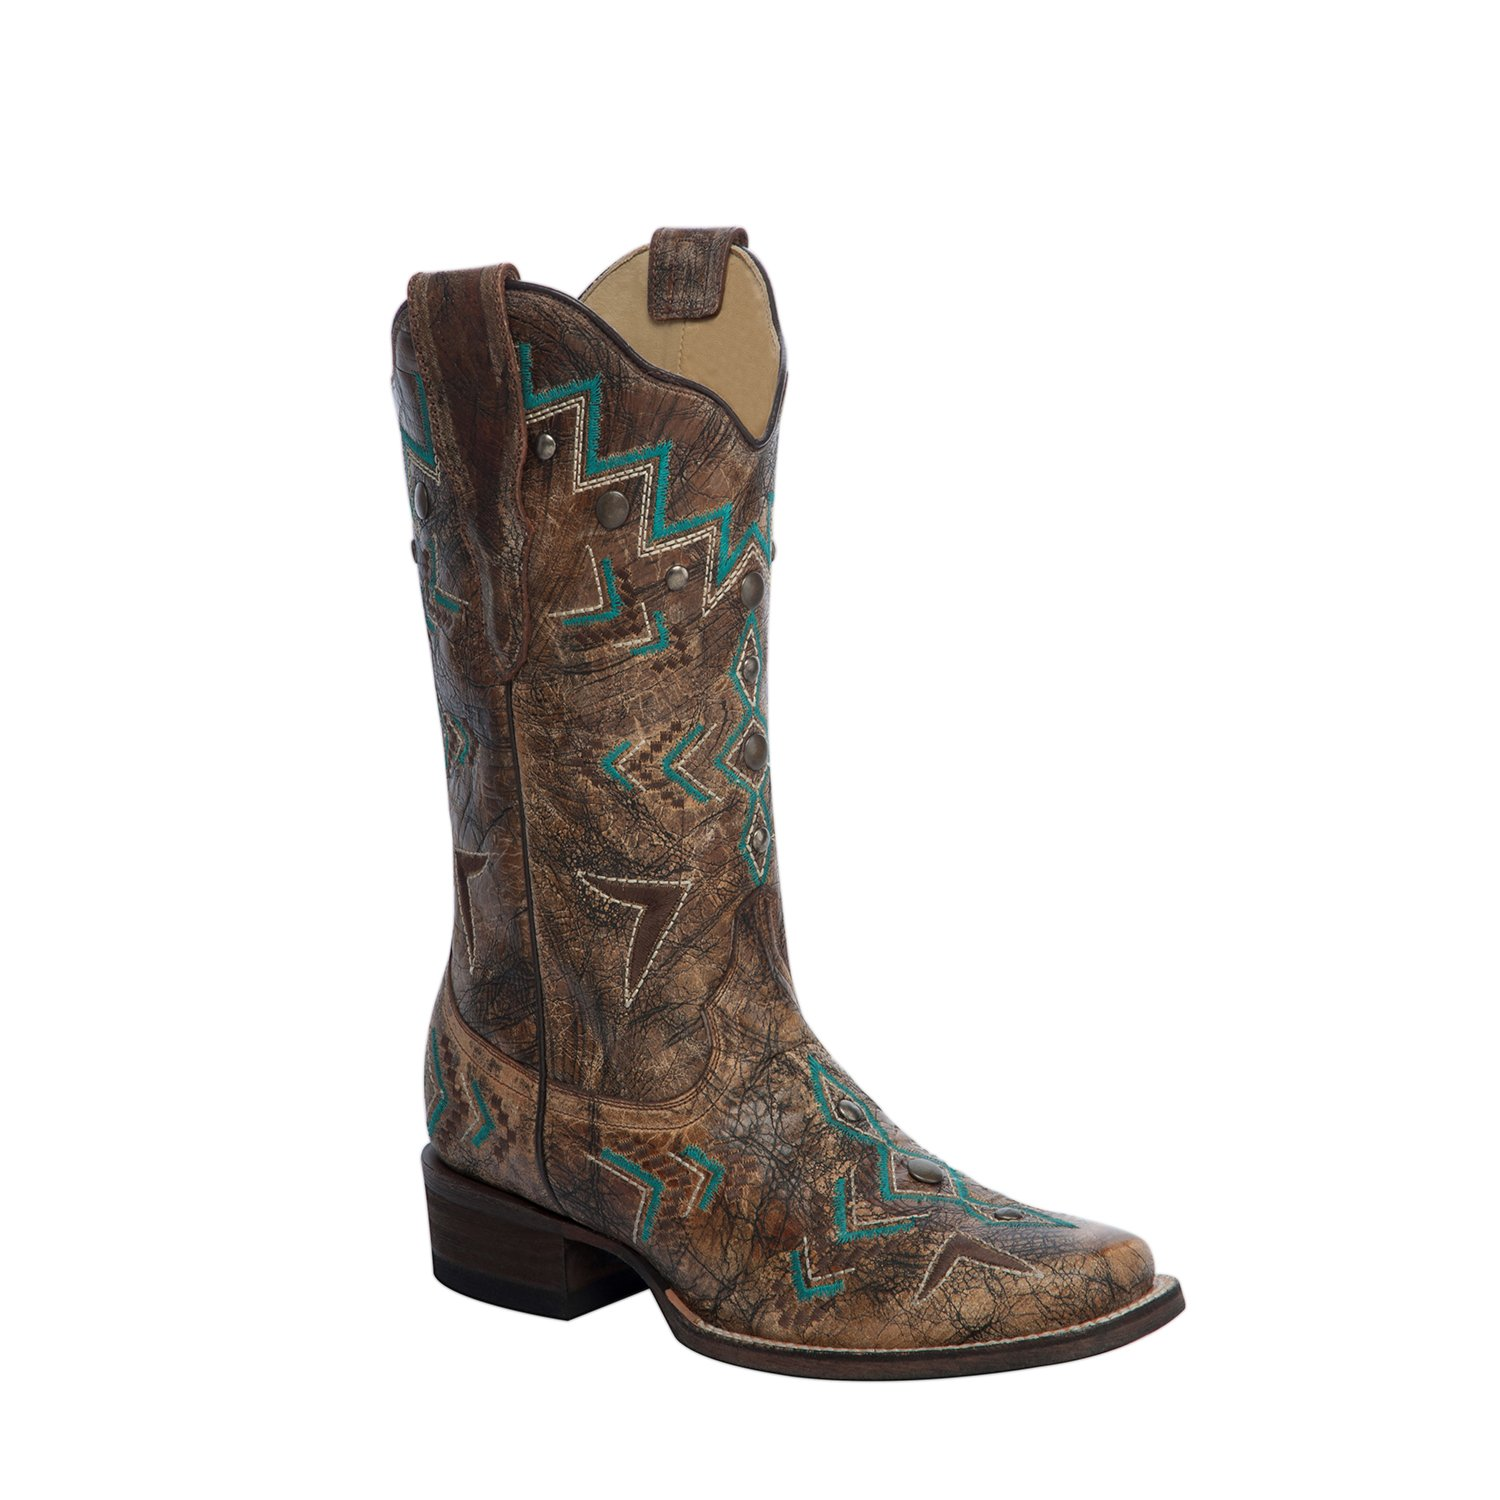 225f13639c5 Corral Women's Aztec Embroidery Bronze/Turquoise Cowboy Boots